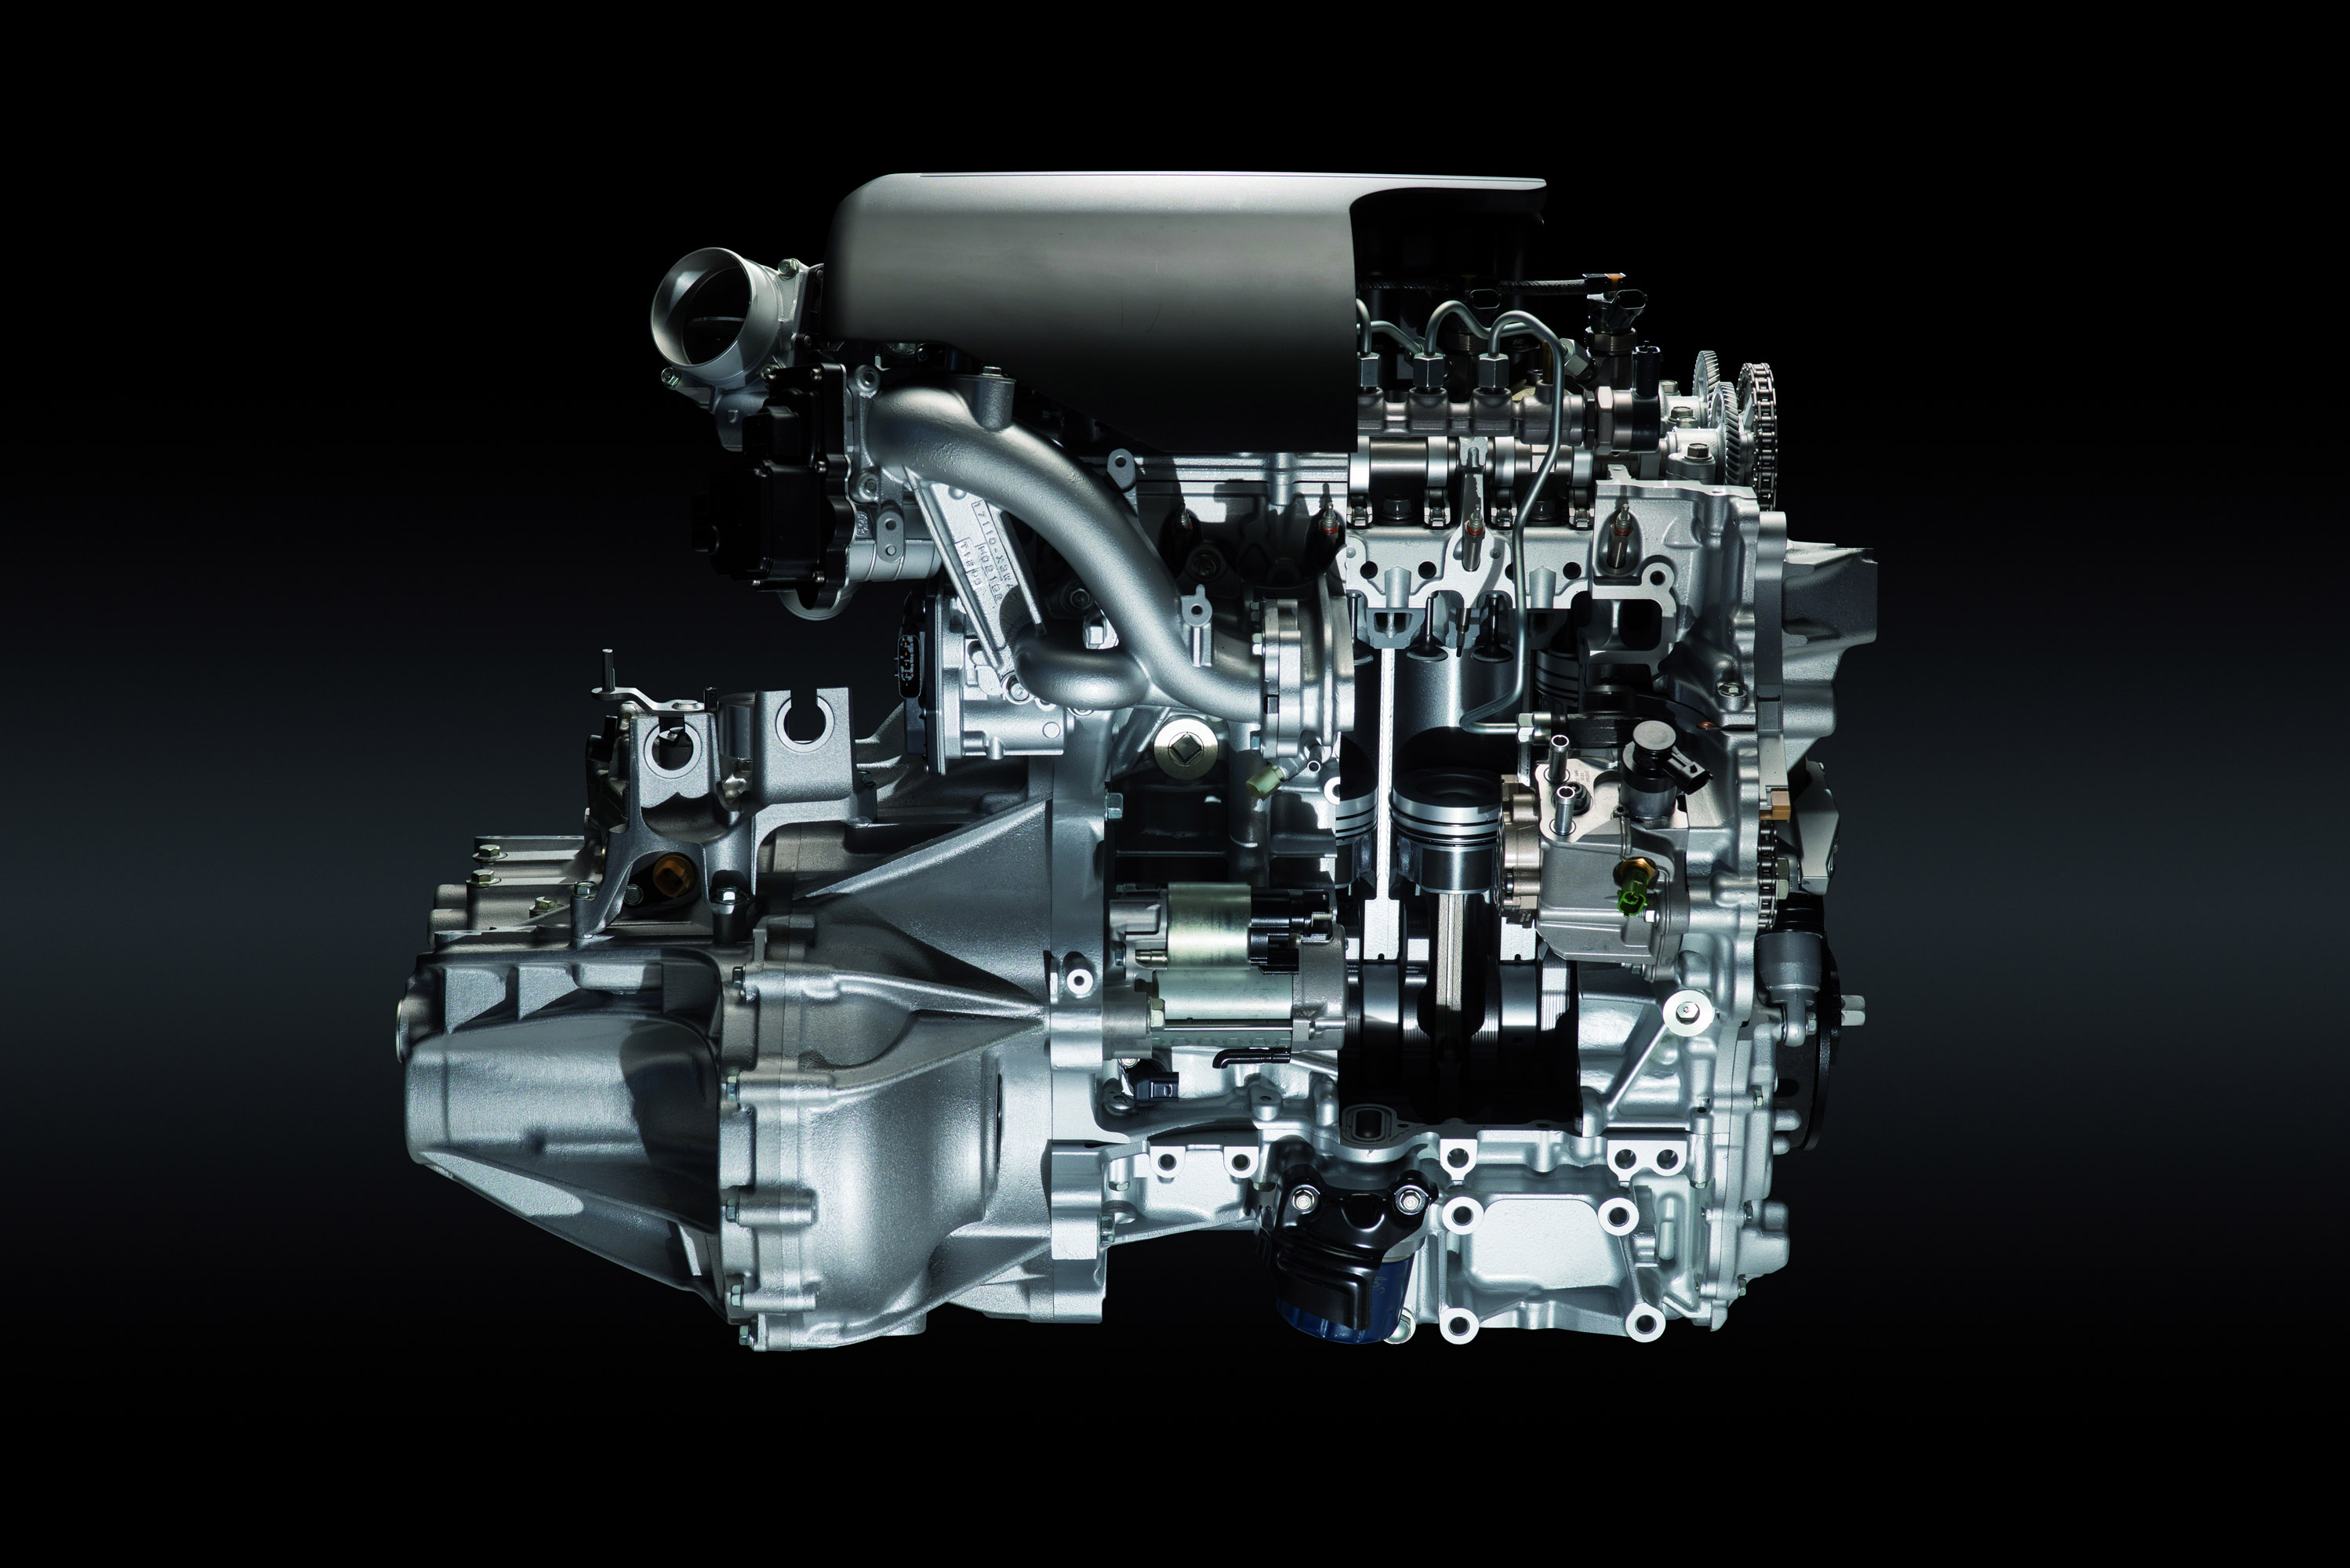 Honda 1 6 I Dtec Diesel 120hp And 300nm